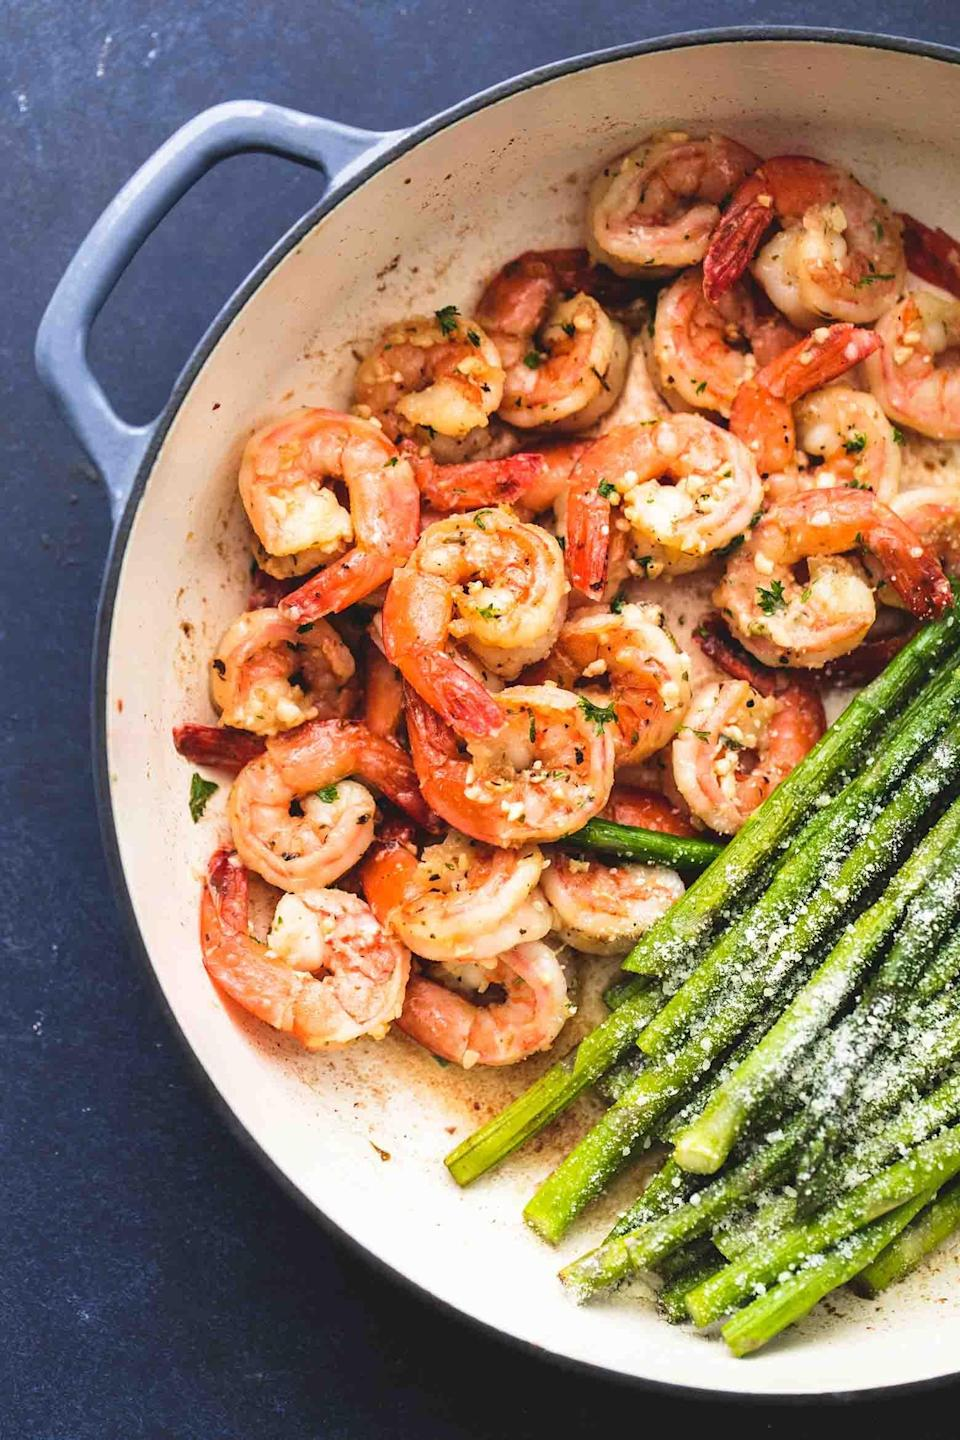 """<p>You can't go wrong when you top shrimp and asparagus with butter, herbs, and garlic. This <a href=""""http://www.lecremedelacrumb.com/one-pan-shrimp-and-asparagus/"""" class=""""link rapid-noclick-resp"""" rel=""""nofollow noopener"""" target=""""_blank"""" data-ylk=""""slk:one-pan meal"""">one-pan meal</a> even adds a sprinkle of Parmesan cheese.</p>"""